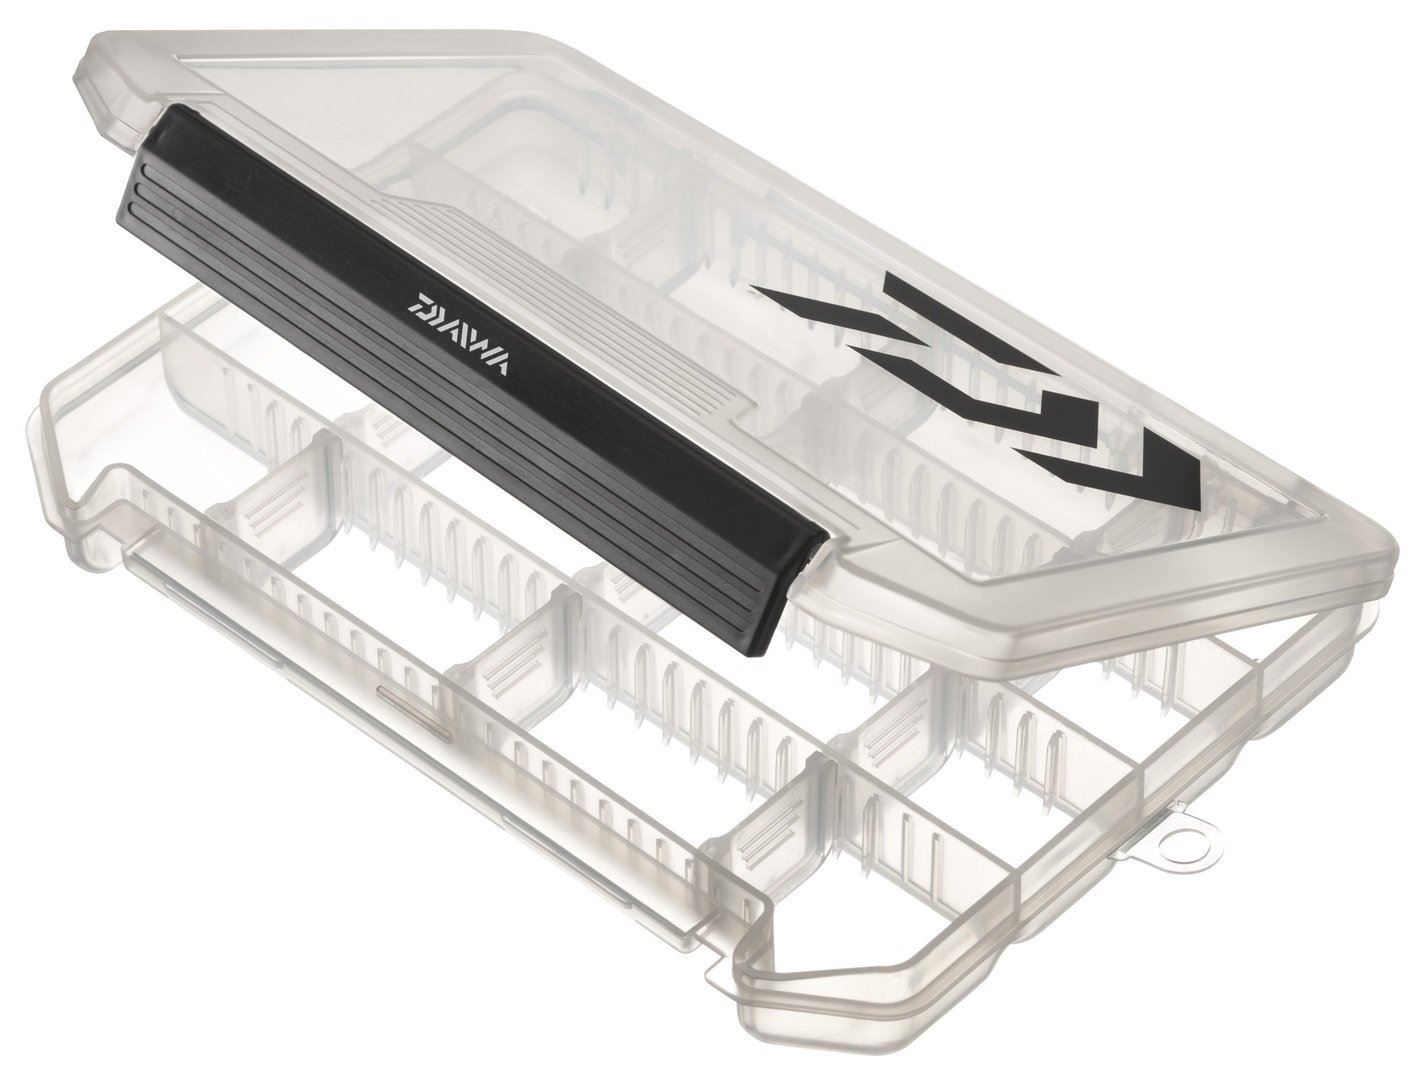 Daiwa multi case fishing tackle boxes all sizes for Fishing tackle box